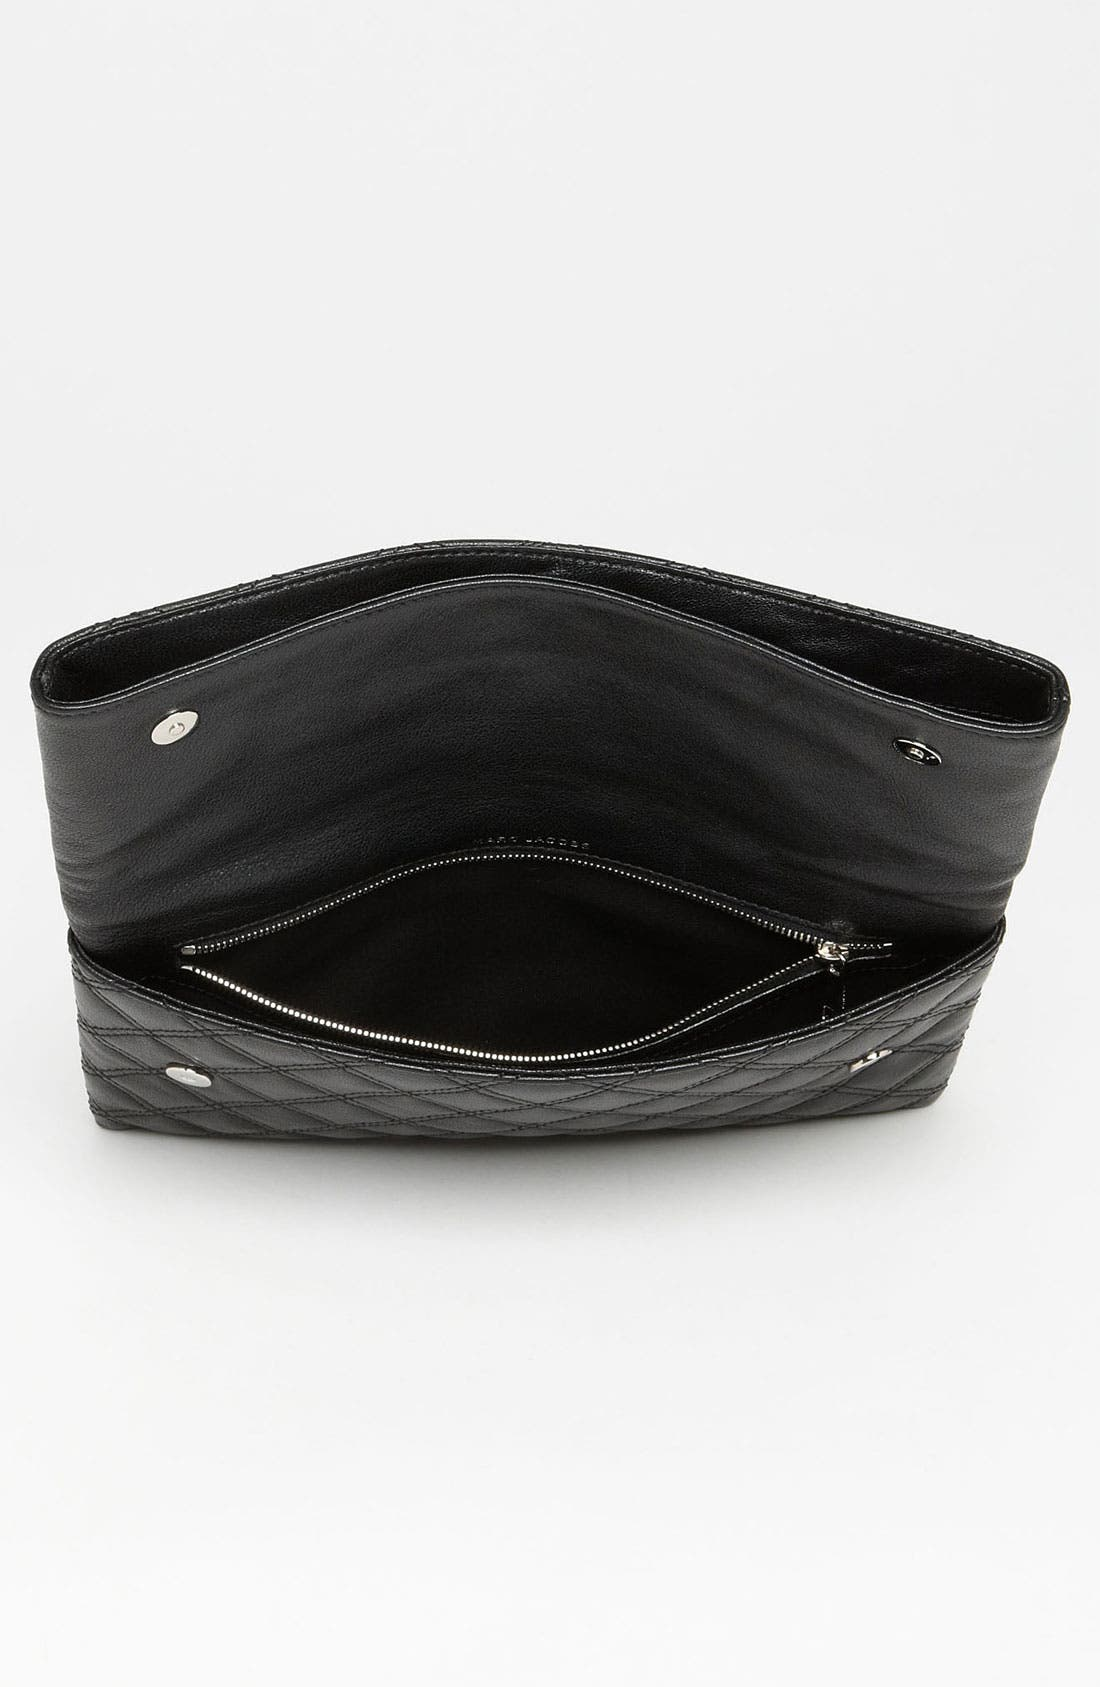 Alternate Image 3  - MARC JACOBS 'Large Eugenie' Quilted Leather Clutch